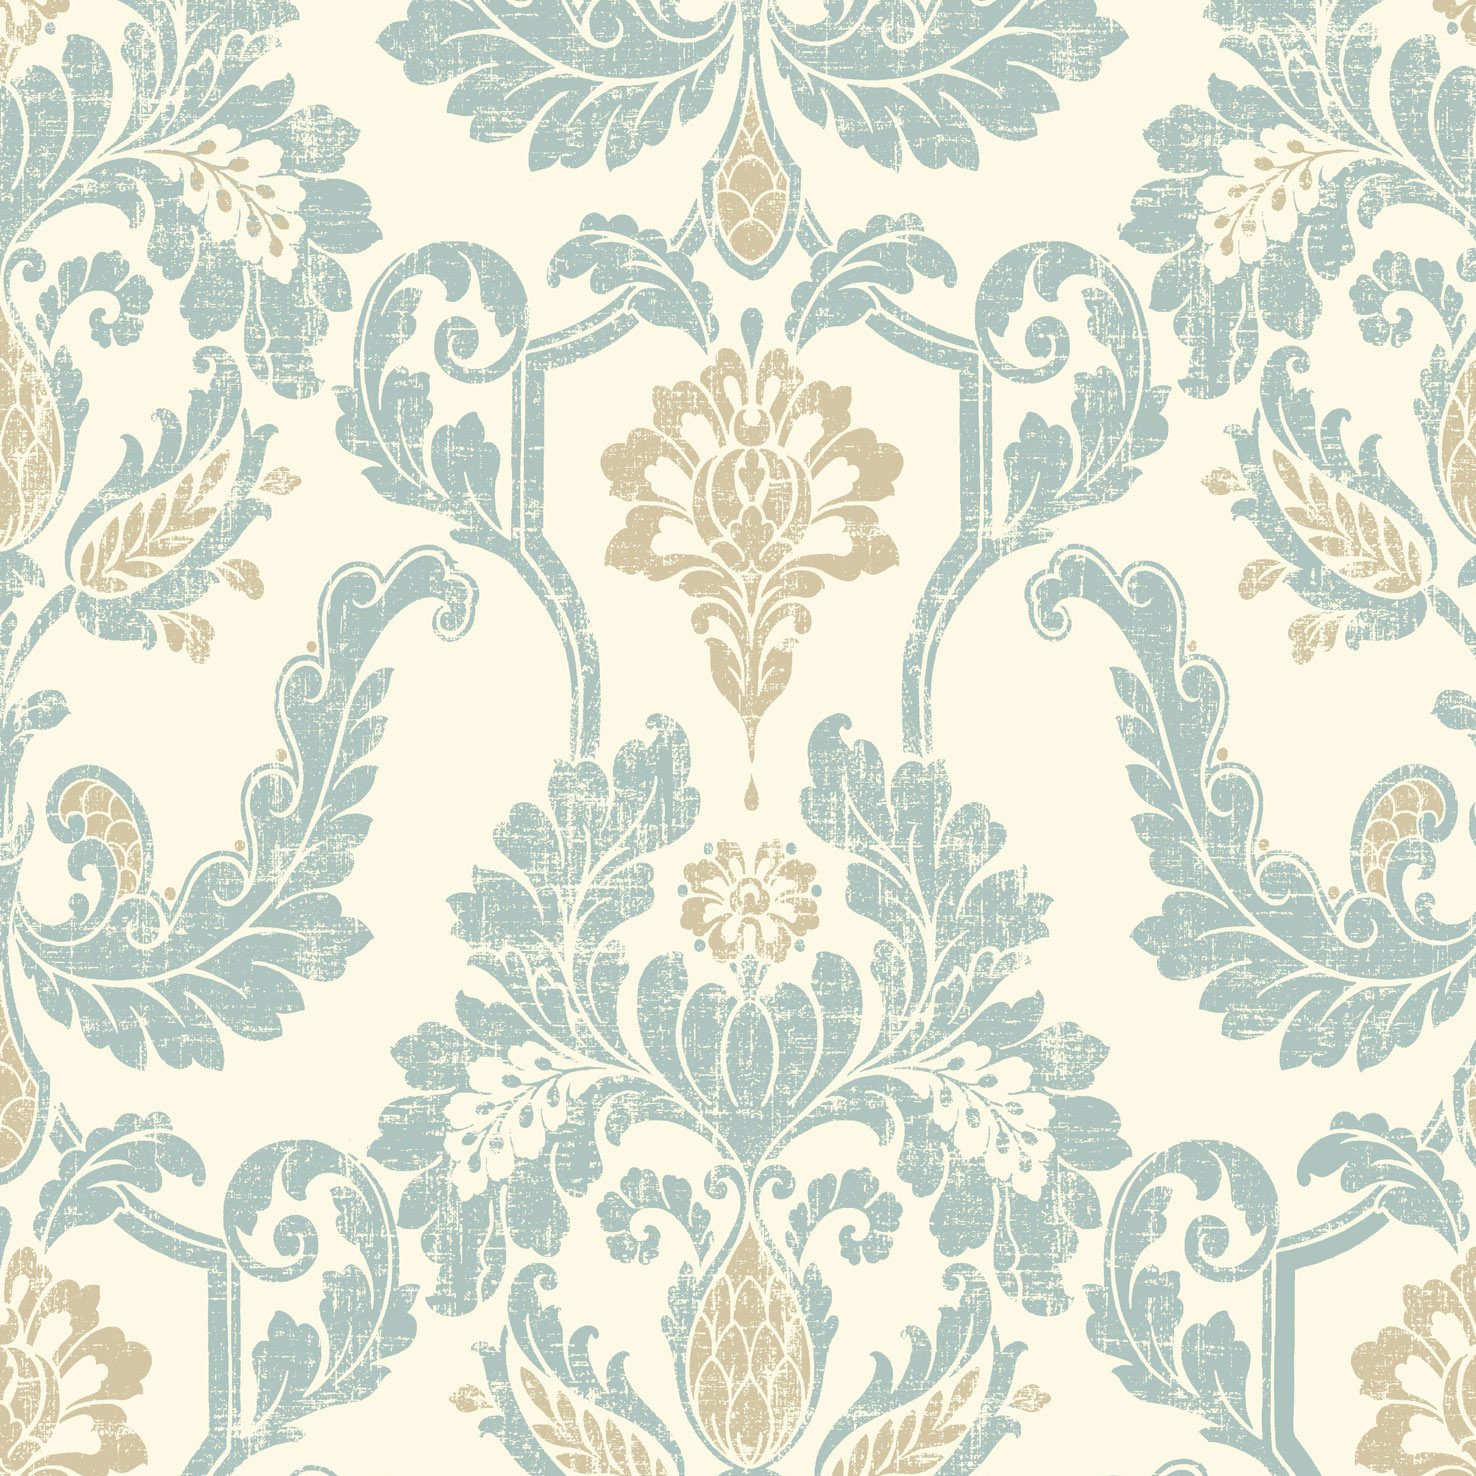 damask with soft blue and gold textured prints on a cream ground 1476x1476